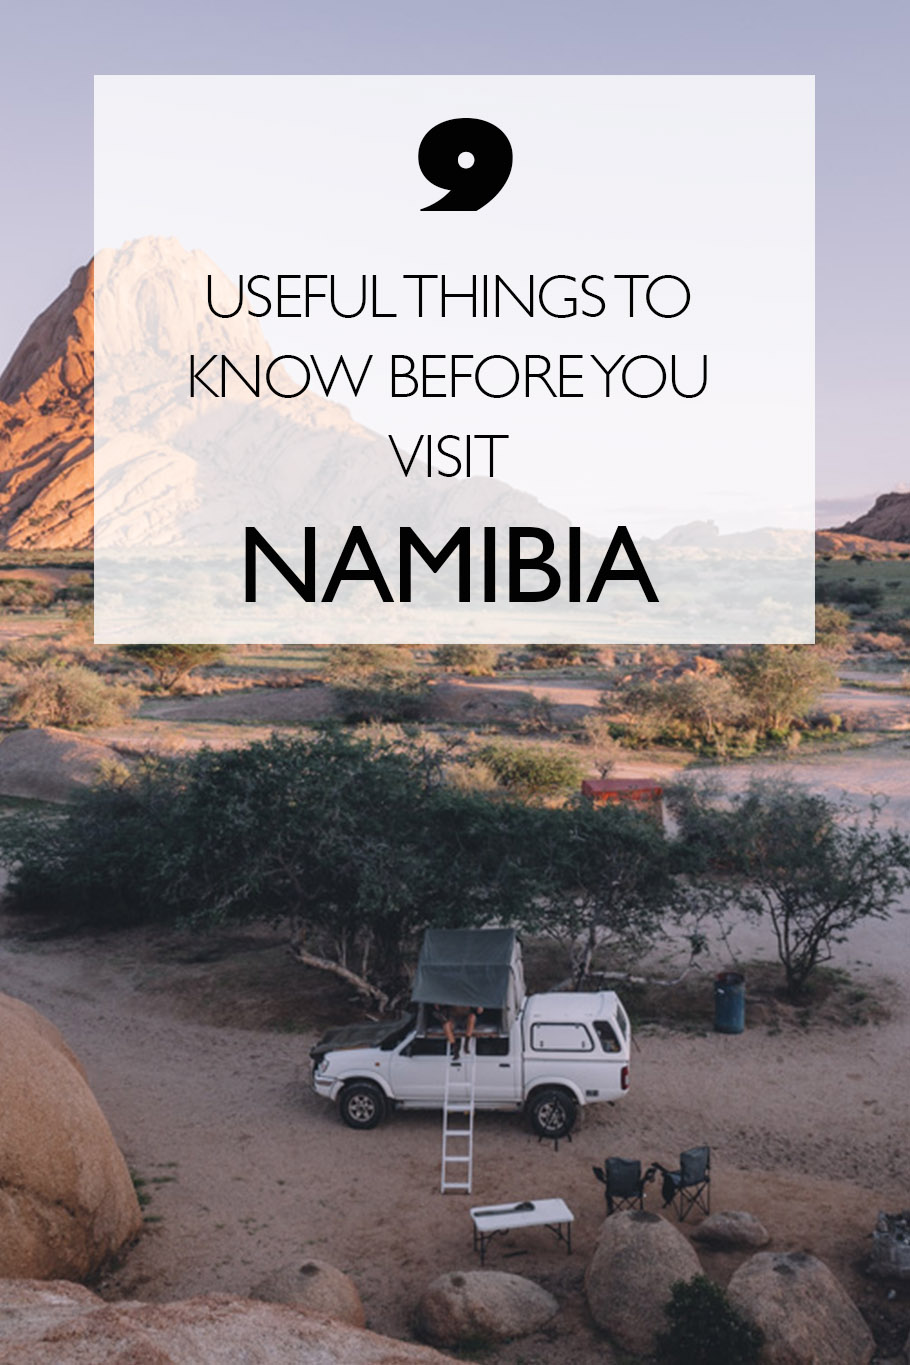 9 Useful Things To Know Before You Visit Namibia